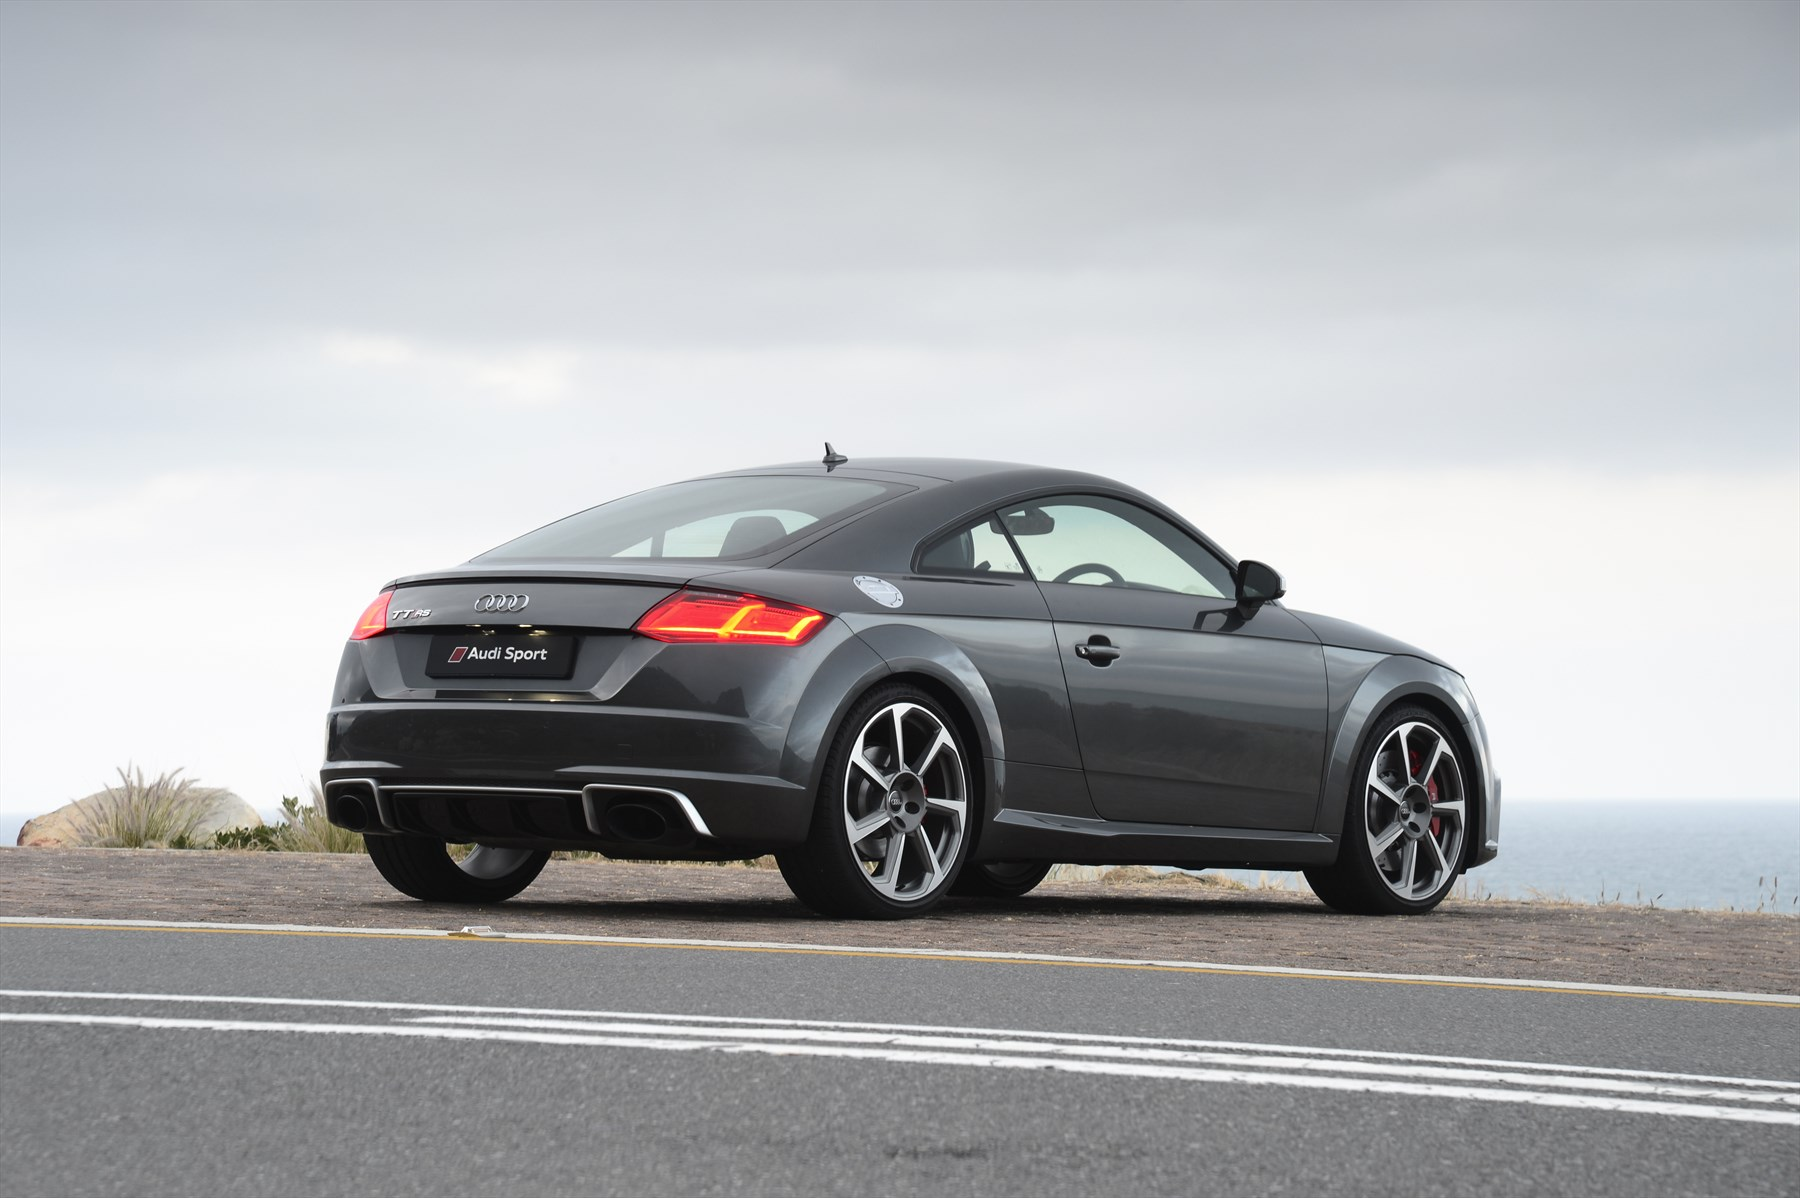 audi sport presents the new audi tt rs coup car insurance. Black Bedroom Furniture Sets. Home Design Ideas